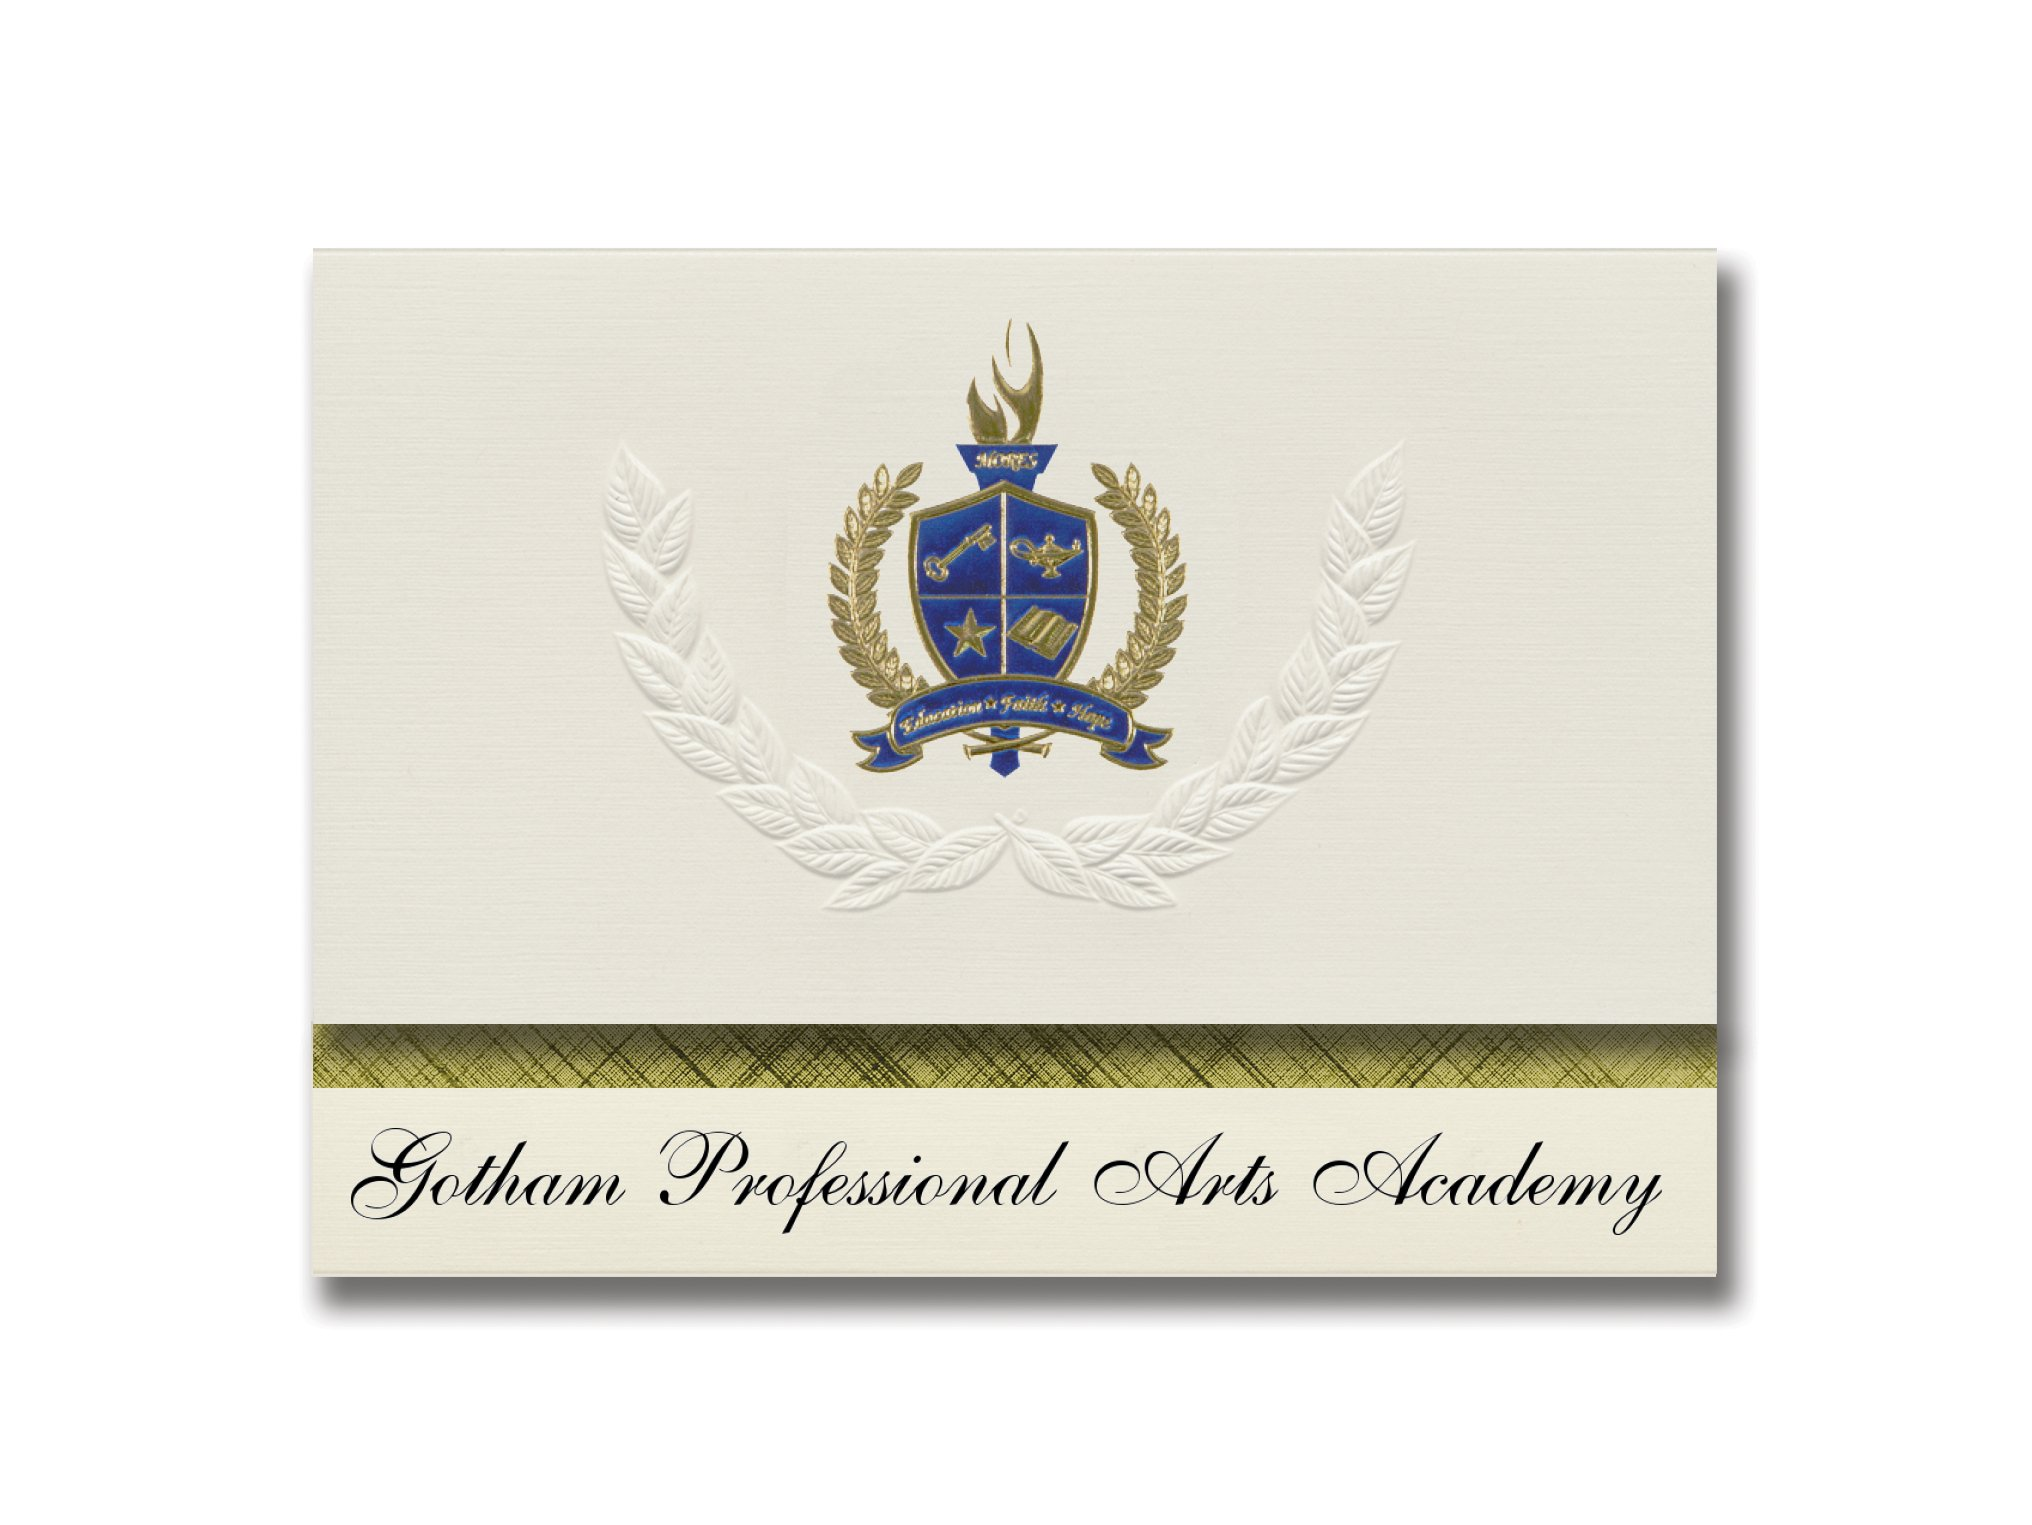 Signature Announcements Gotham Elite Arts Academy (Brooklyn, NY) Graduation Announcements, Presidential style, Basic package of 25 with Gold & Blue Metallic Foil seal